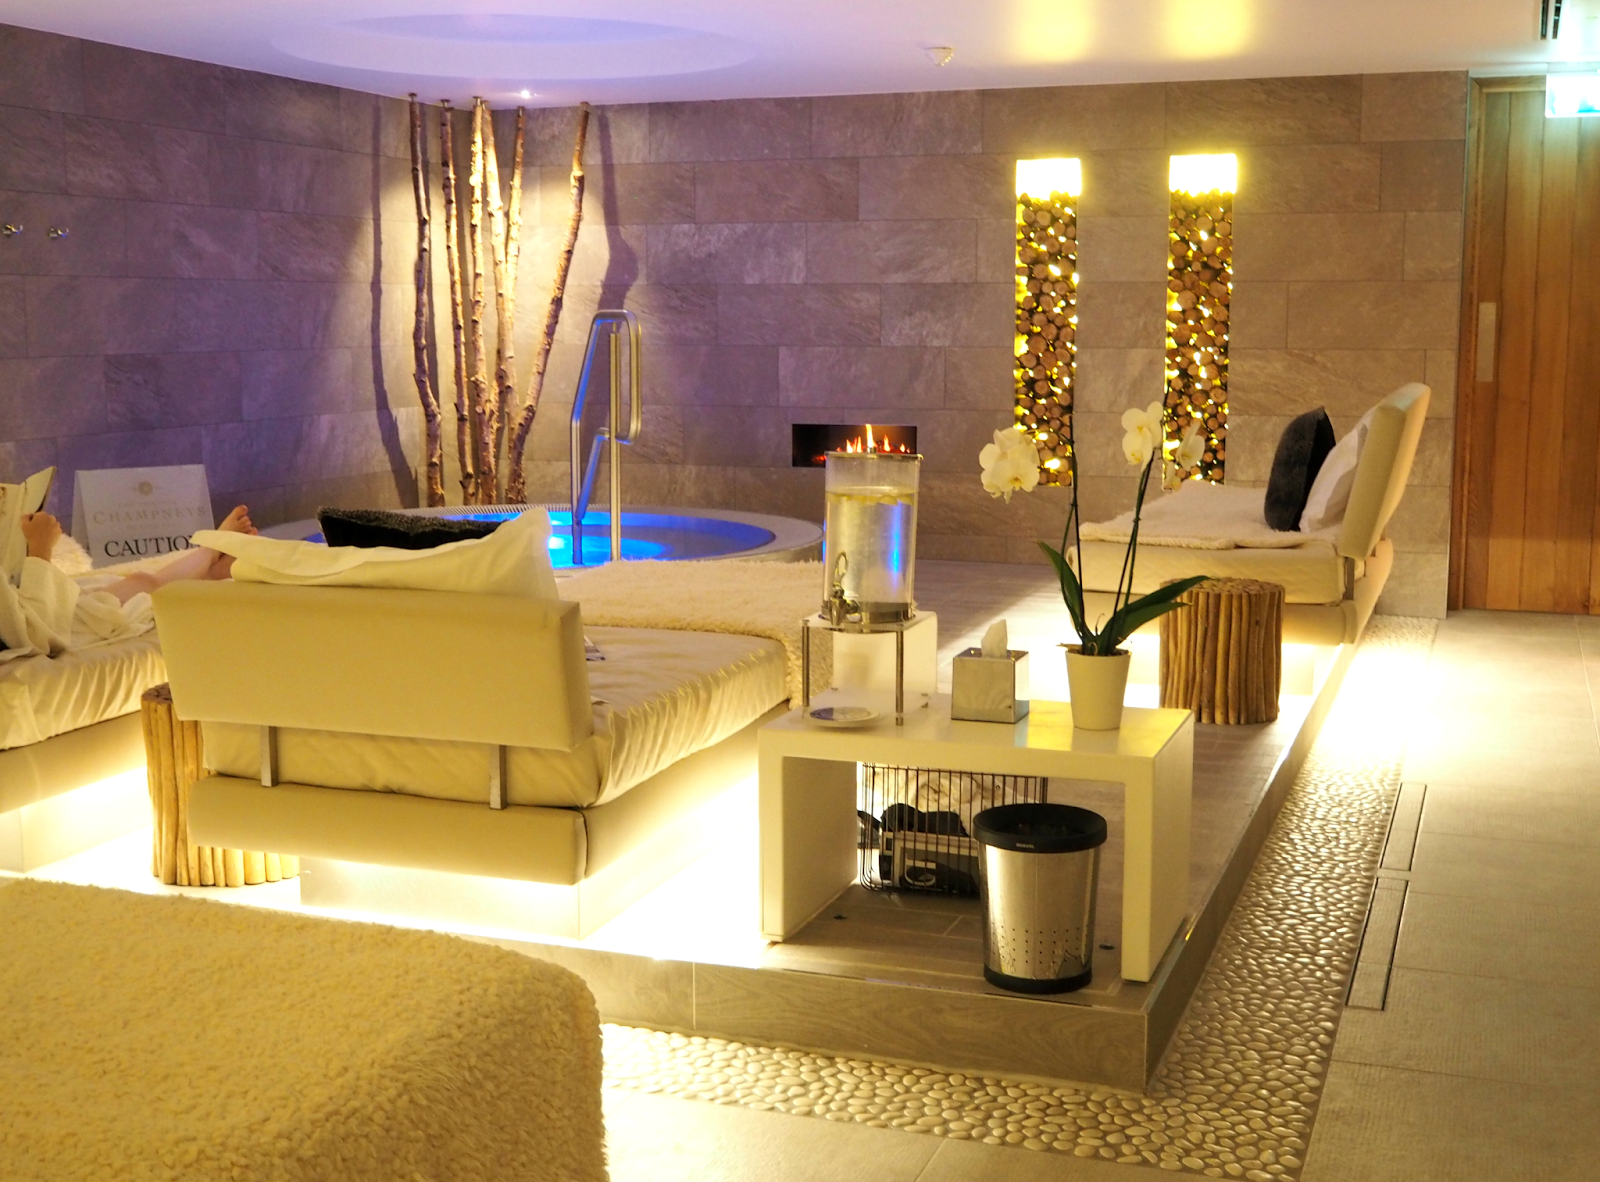 This Is Not Just Any Spa Day. This Is A Champney's Tring Spa Day. 6